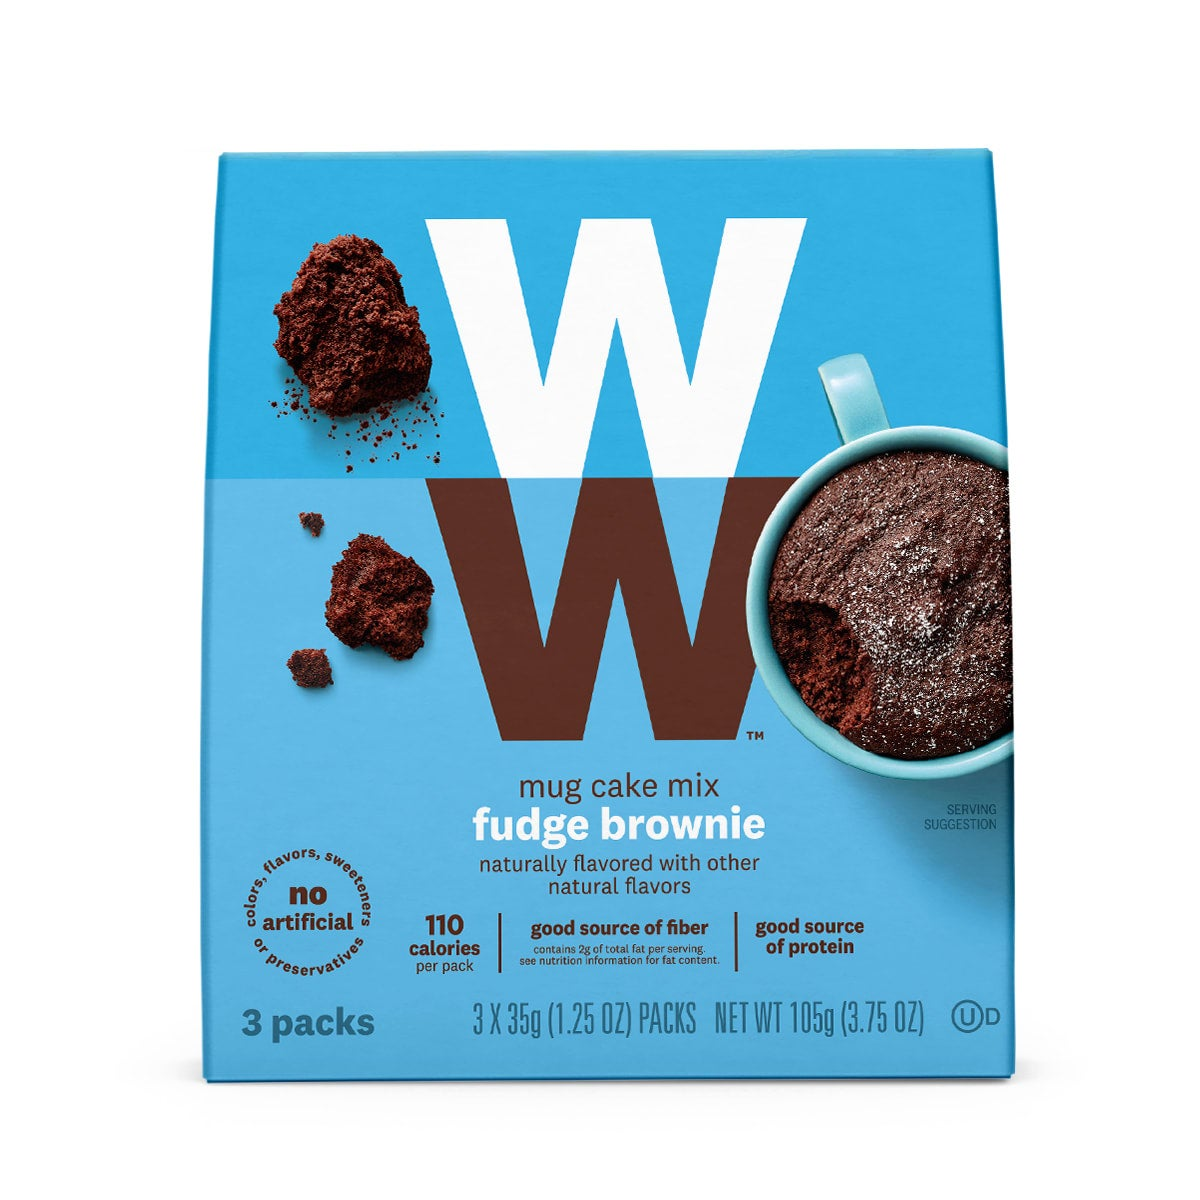 Fudge Brownie Mug Cake Mix Ww Shop Weight Watchers Online Store